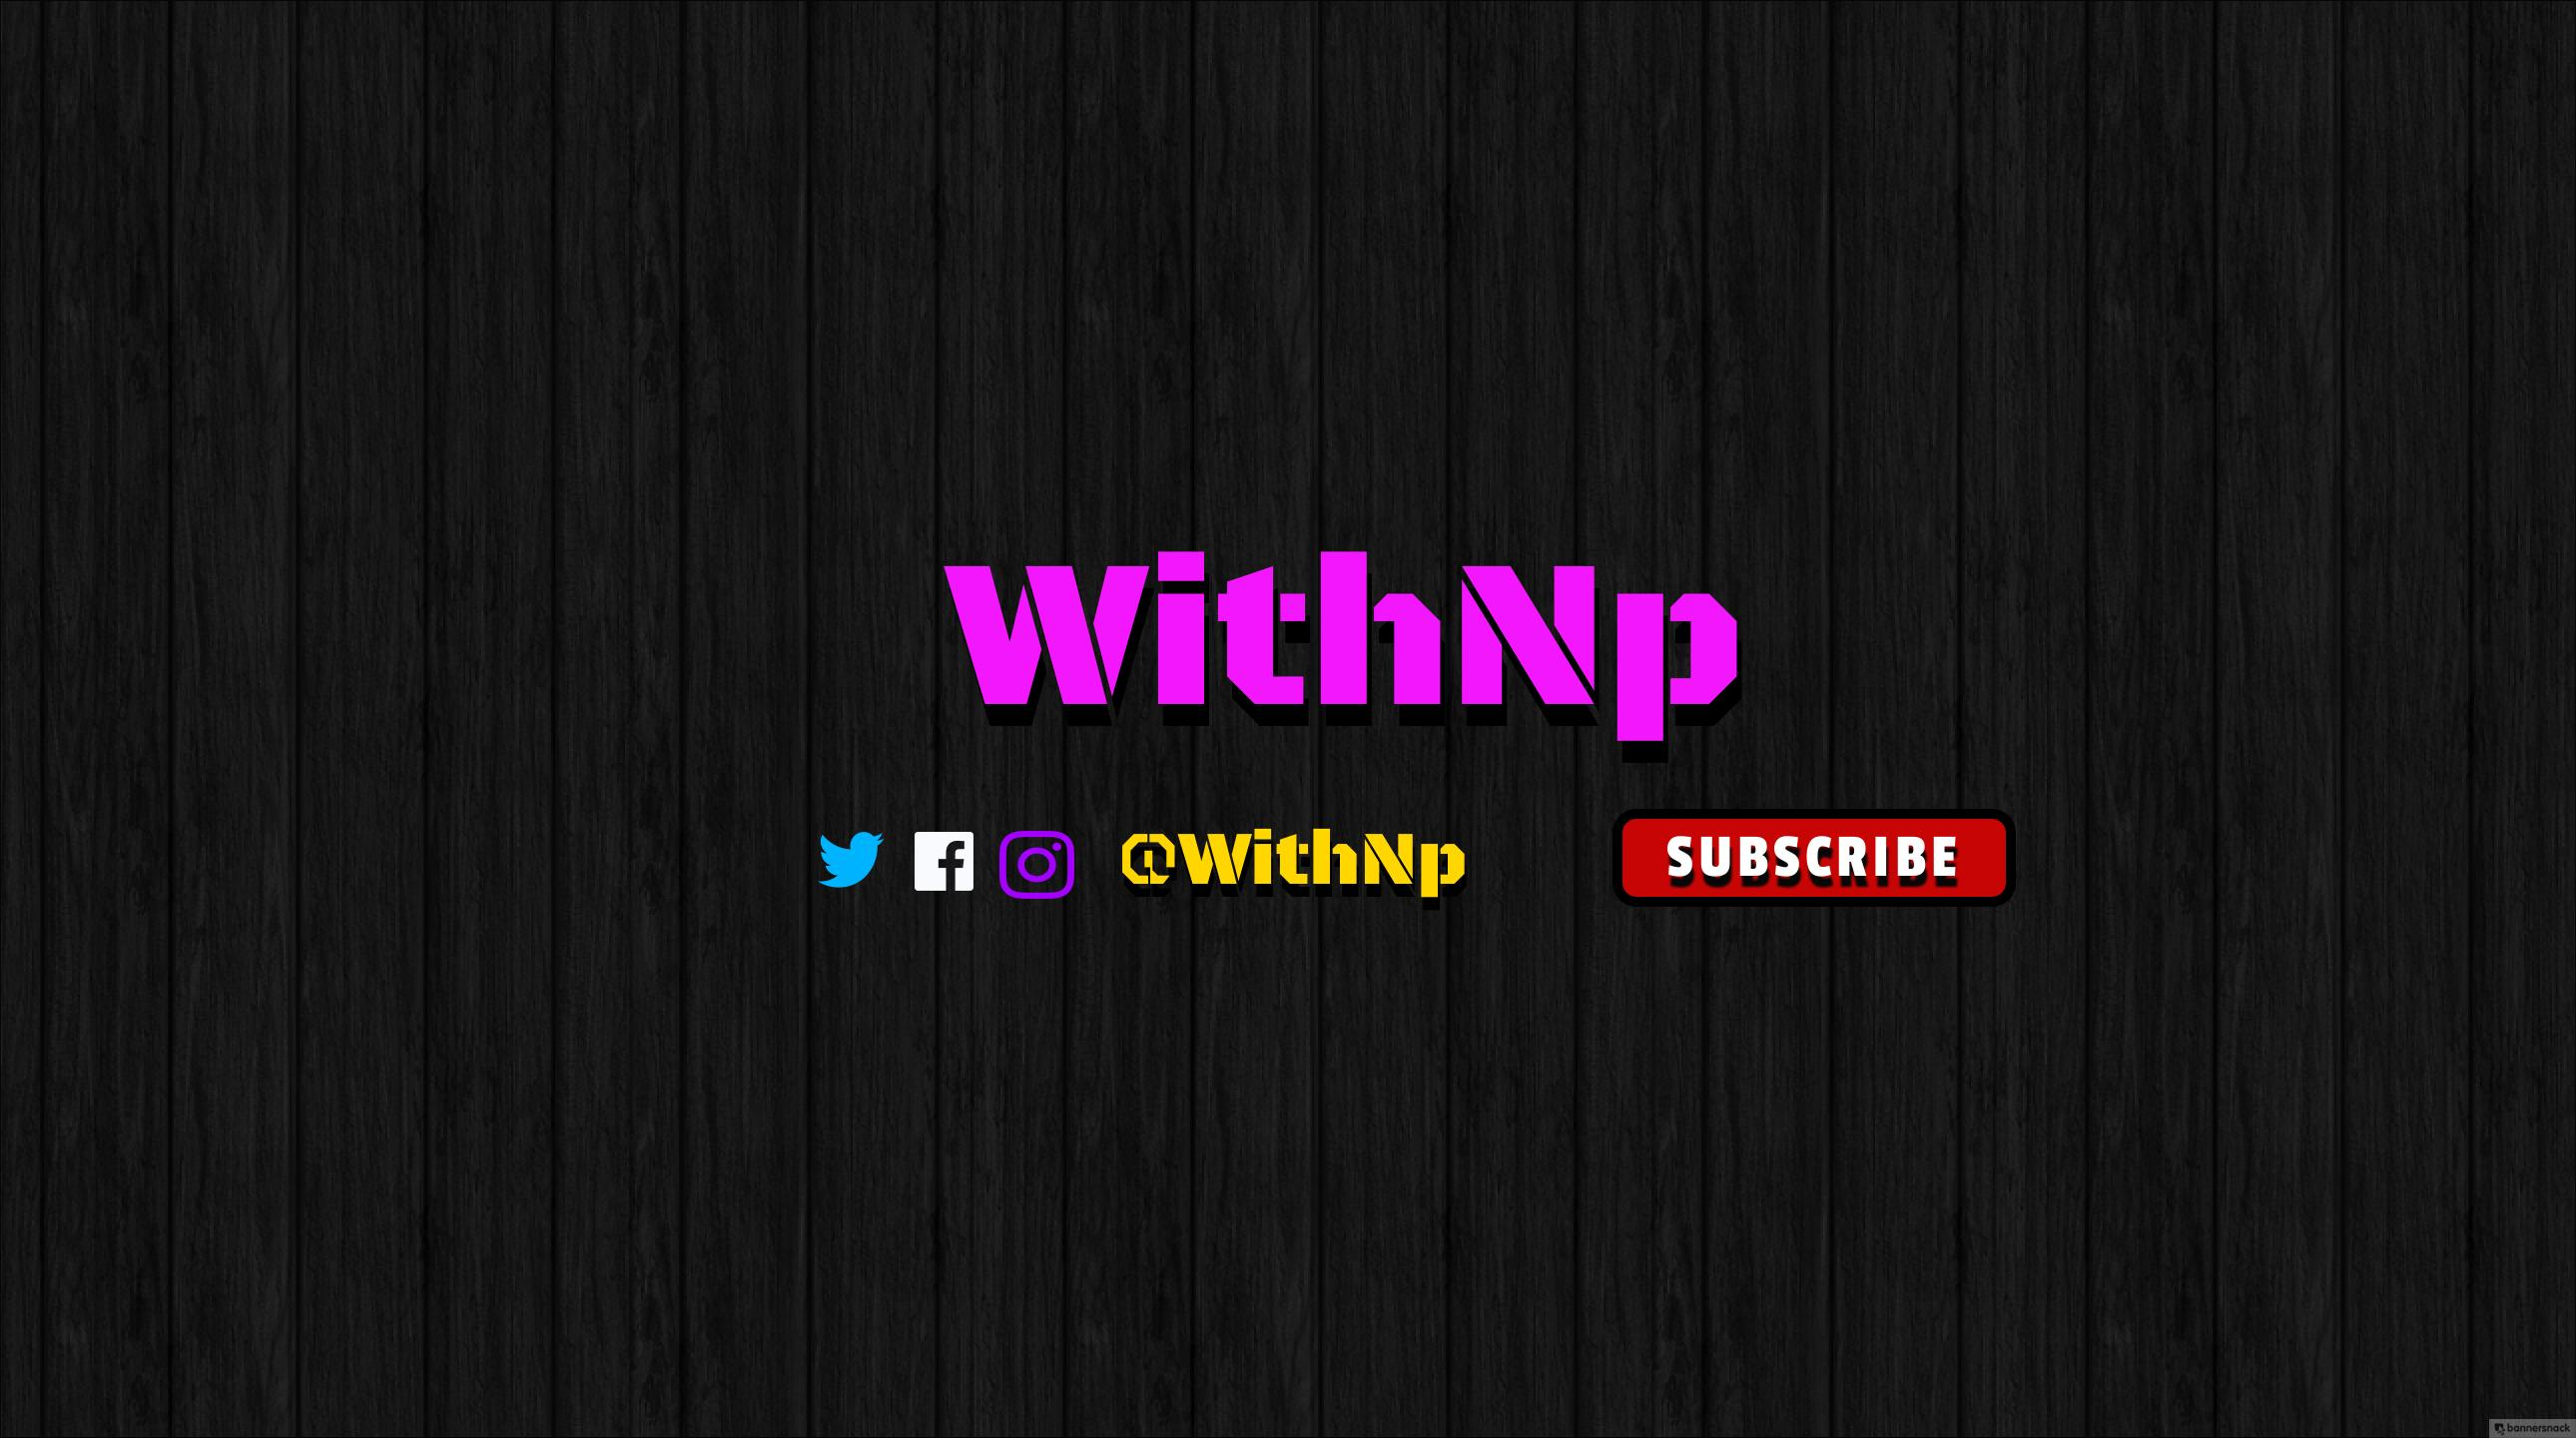 WIthNp